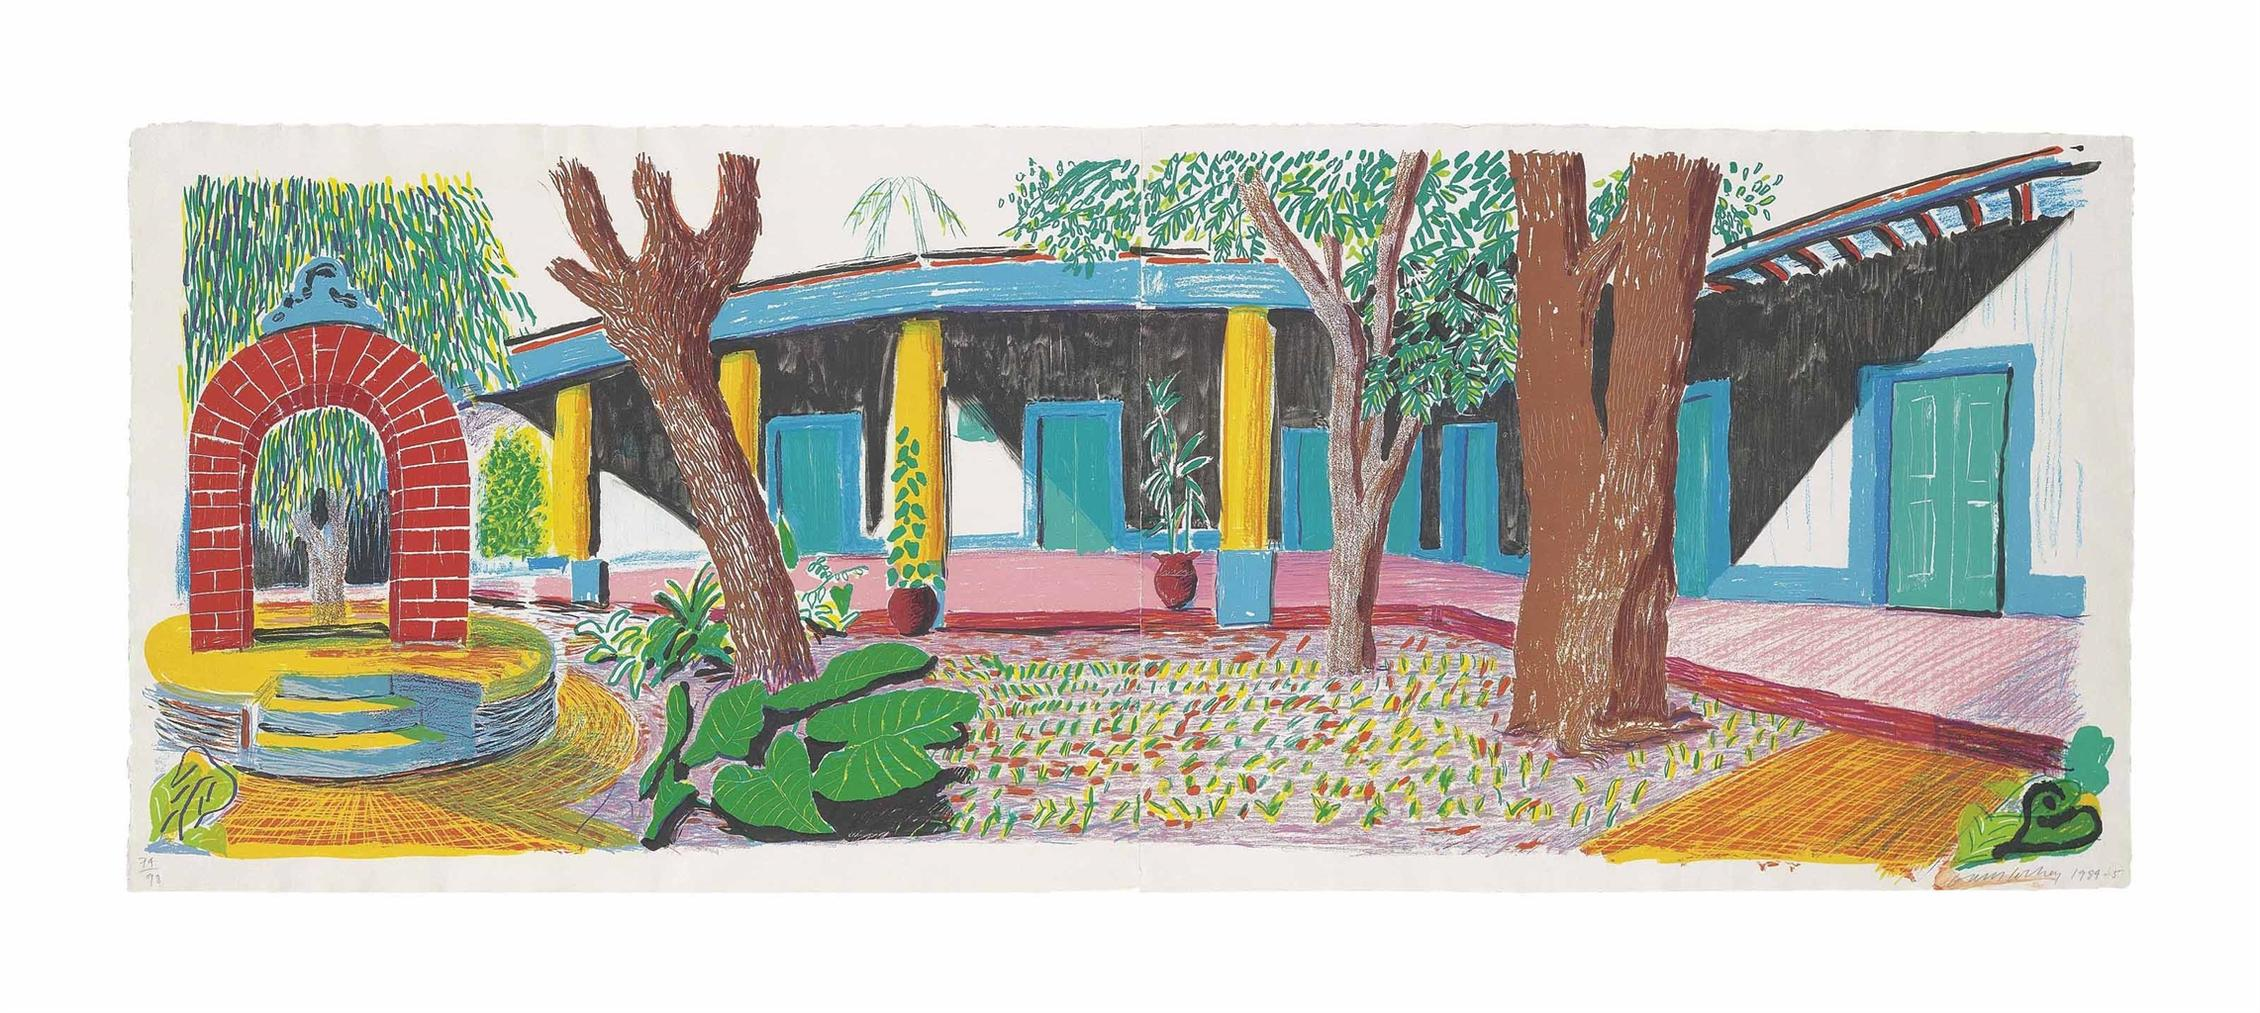 David Hockney-Hotel Acatlan: Second Day, From: The Moving Focus Series-1985